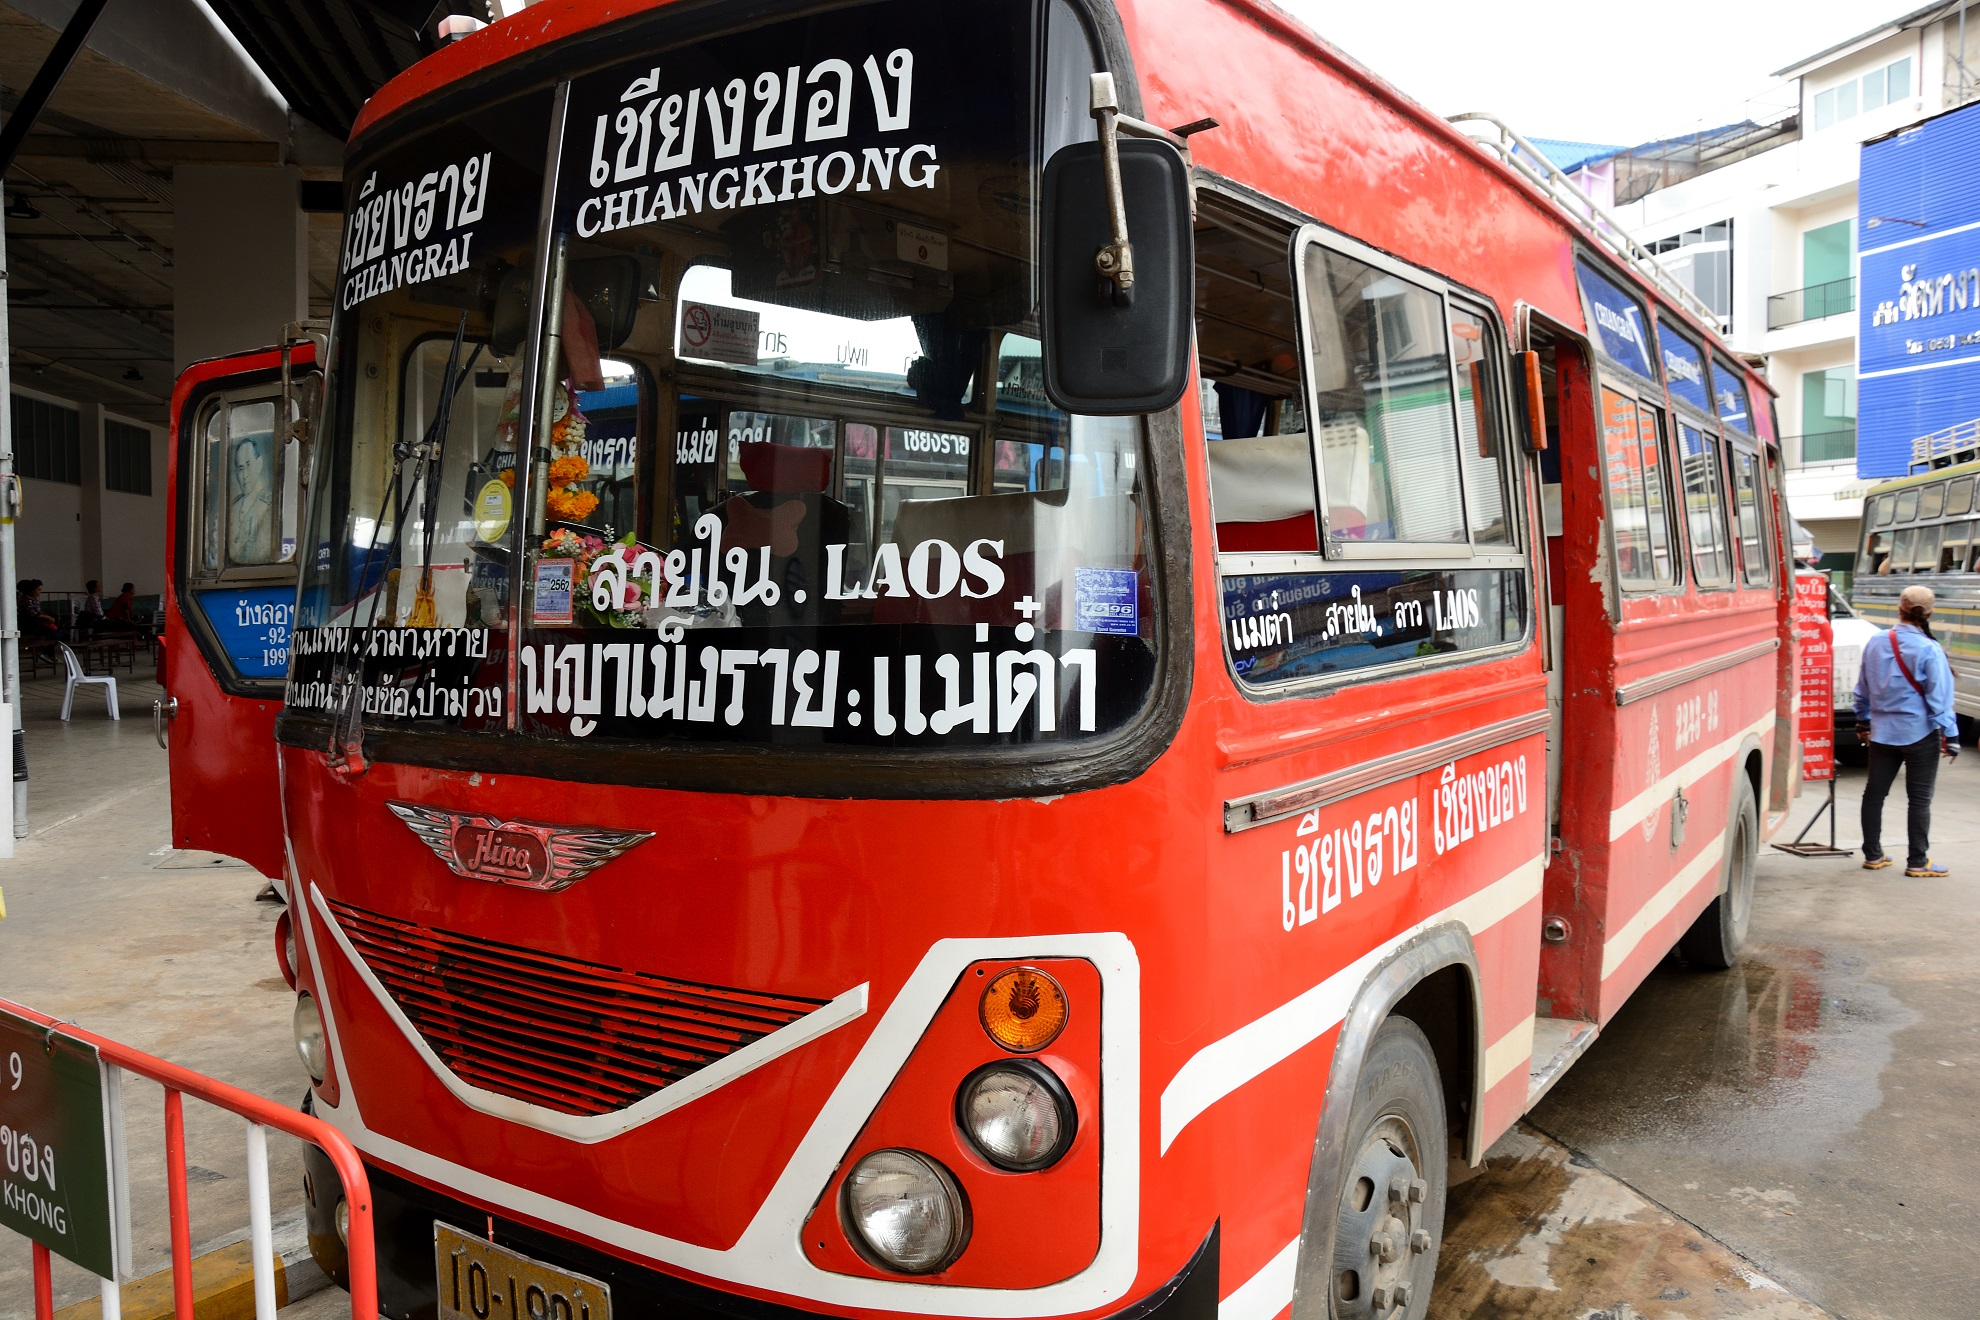 The red bus to Chiang Khong